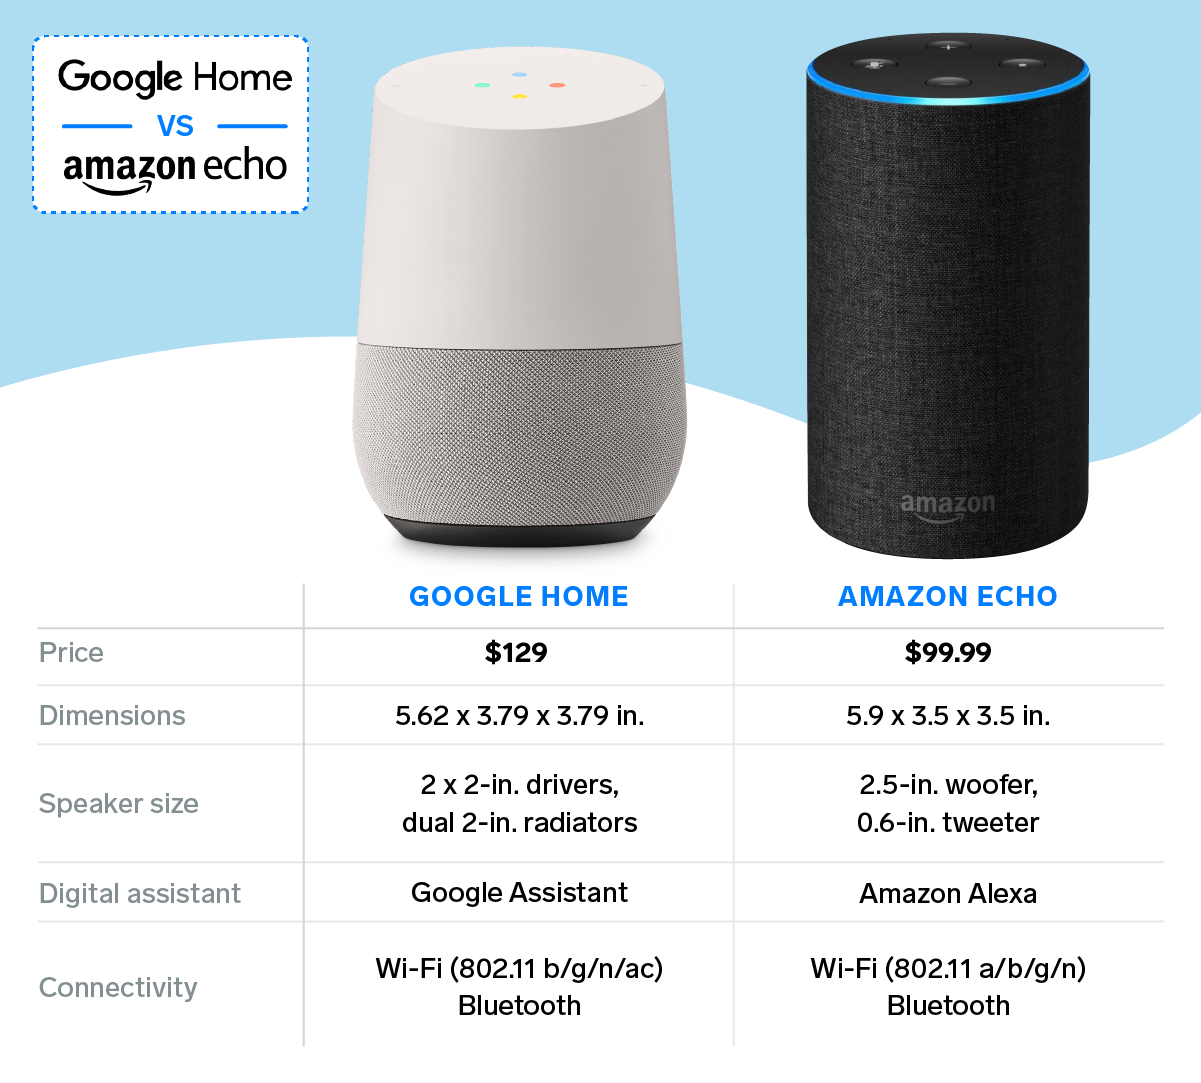 Amazon Echo vs Google Home Graphic